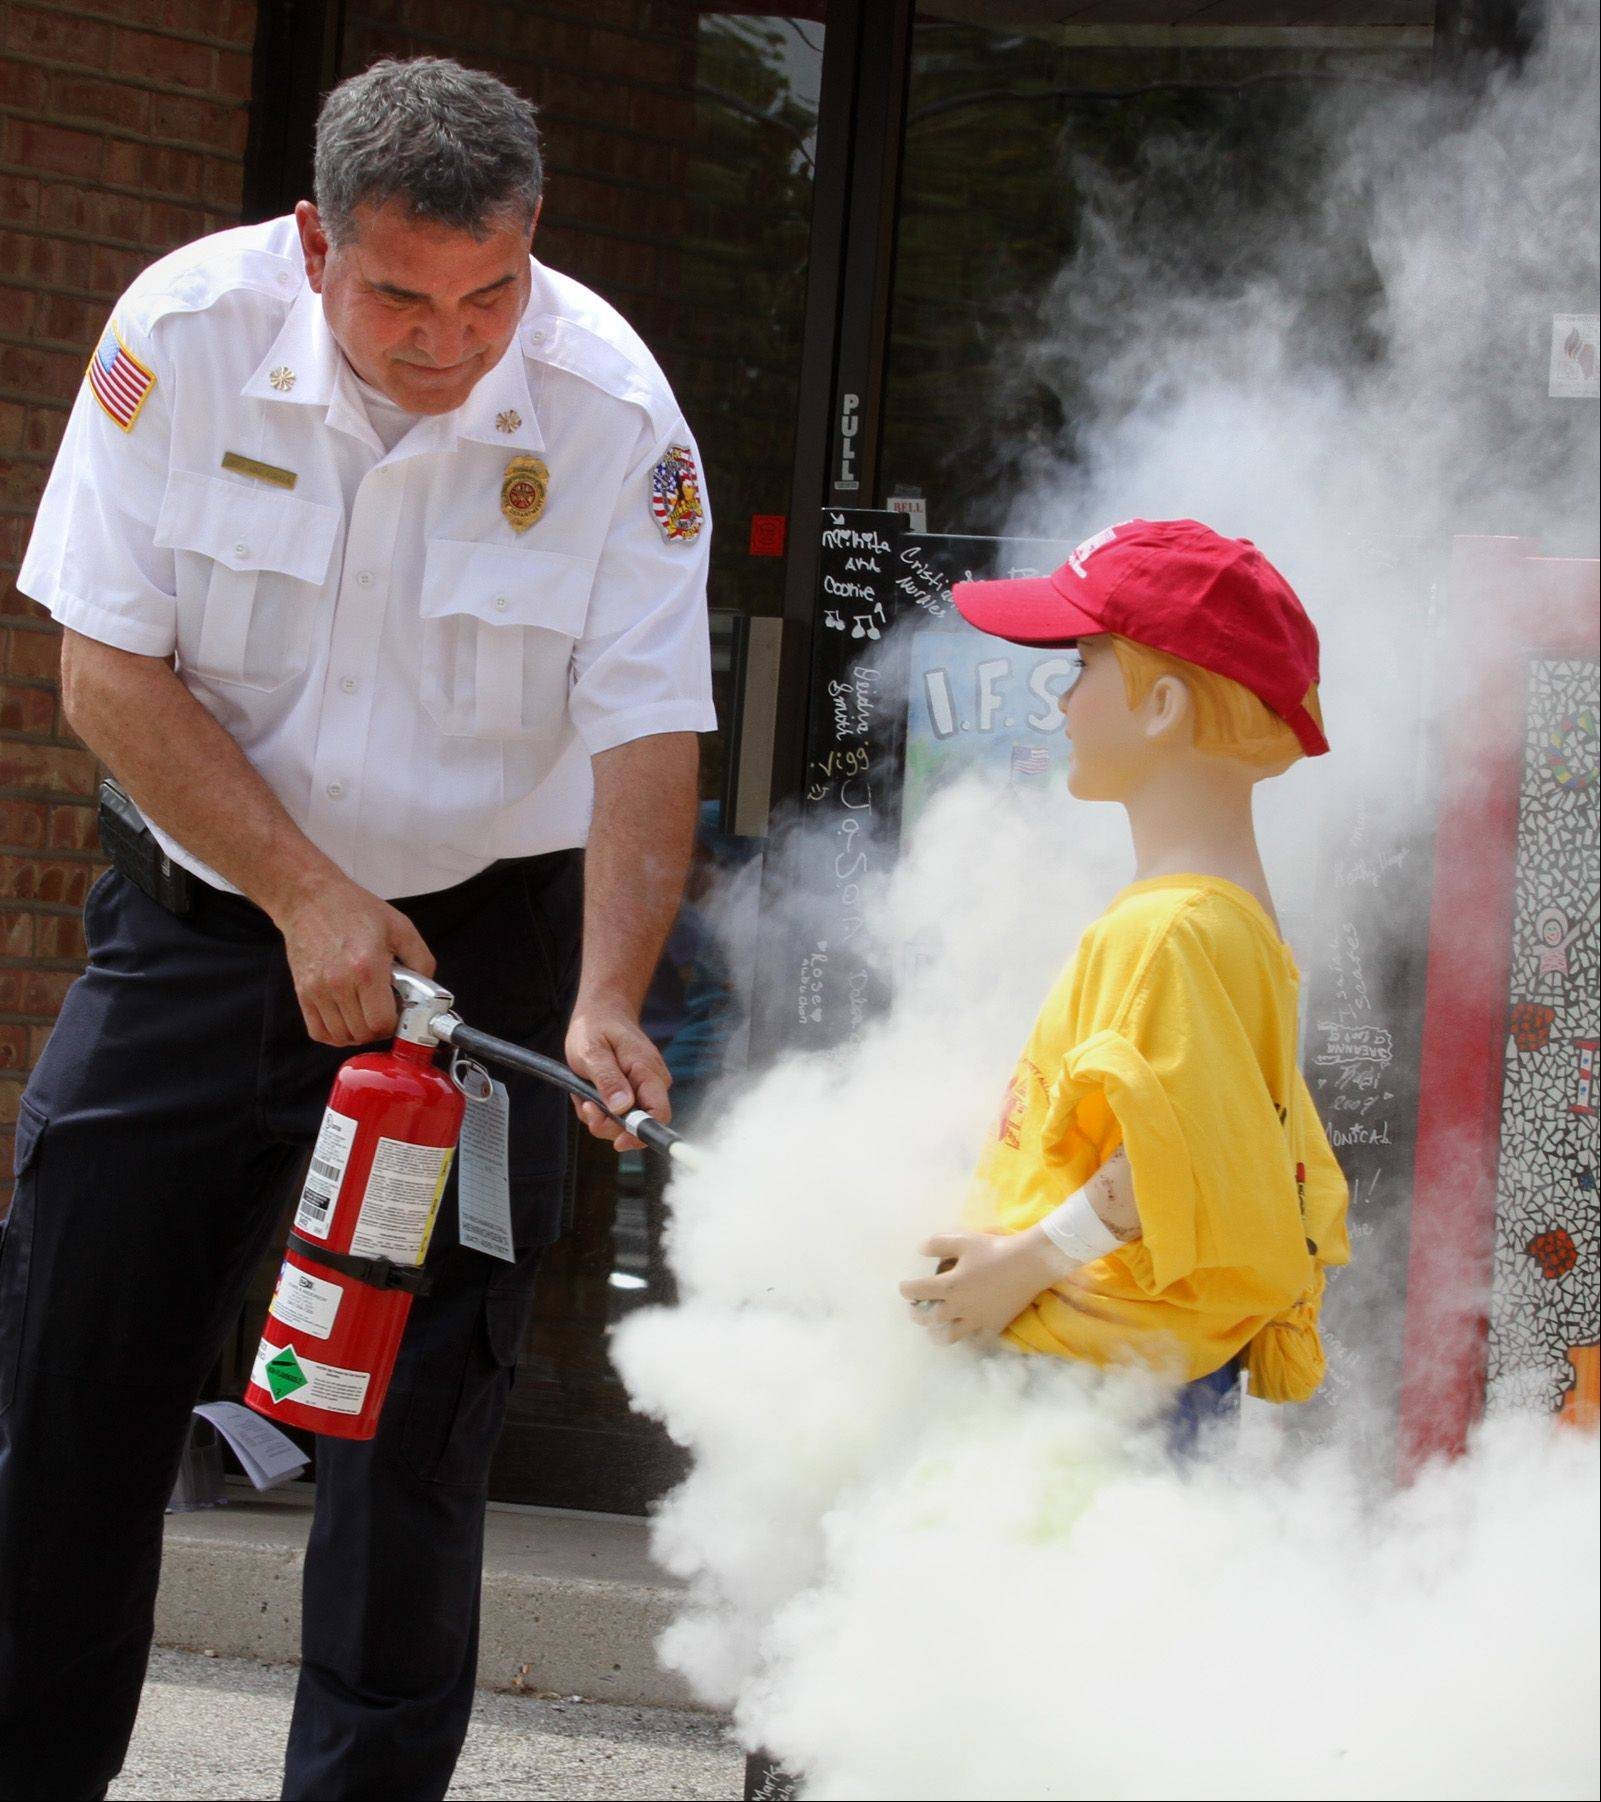 Michael Kuryla, president of Cook County Fire Chiefs Association, extinguishes a child mannequin's clothes after it was intentionally set on fire with sparklers during a fireworks safety demonstration Tuesday.